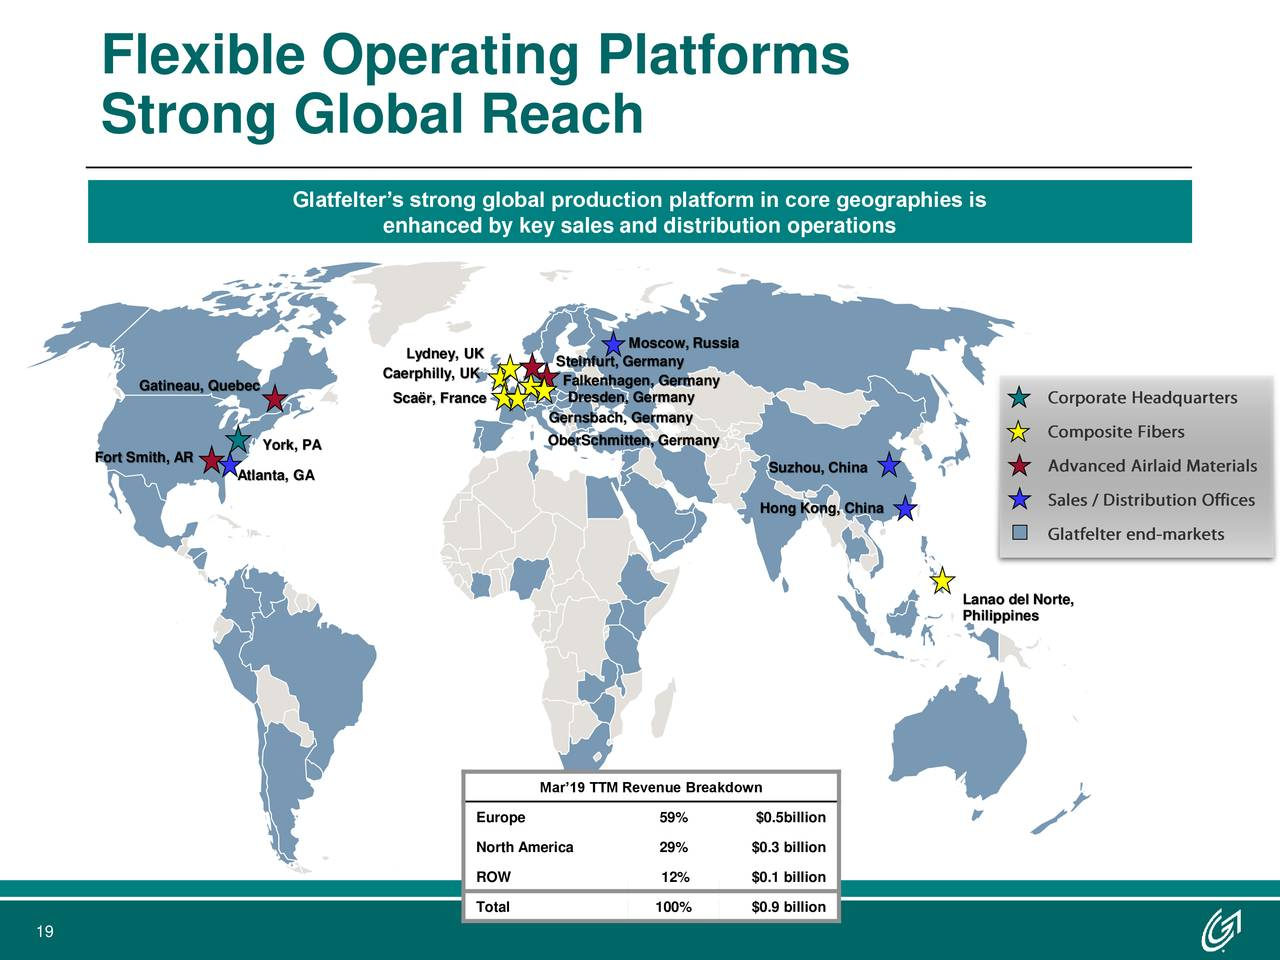 Strong Global Reach Glatfelter's strong global production platform in core geographies is enhanced by key sales and distribution operations Moscow, Russia Lydney, UK Steinfurt, Germany Caerphilly, UK Falkenhagen, Germany Gatineau, Quebec Dresden, Germany Scaër, France Gernsbach, Germany York, PA OberSchmitten, Germany Fort Smith, AR Atlanta, GA Suzhou, China Hong Kong, China Lanao del Norte, Philippines Mar'19 TTM Revenue Breakdown Europe 59% $0.5billion North America 29% $0.3 billion ROW 12% $0.1 billion Total 100% $0.9 billion 19